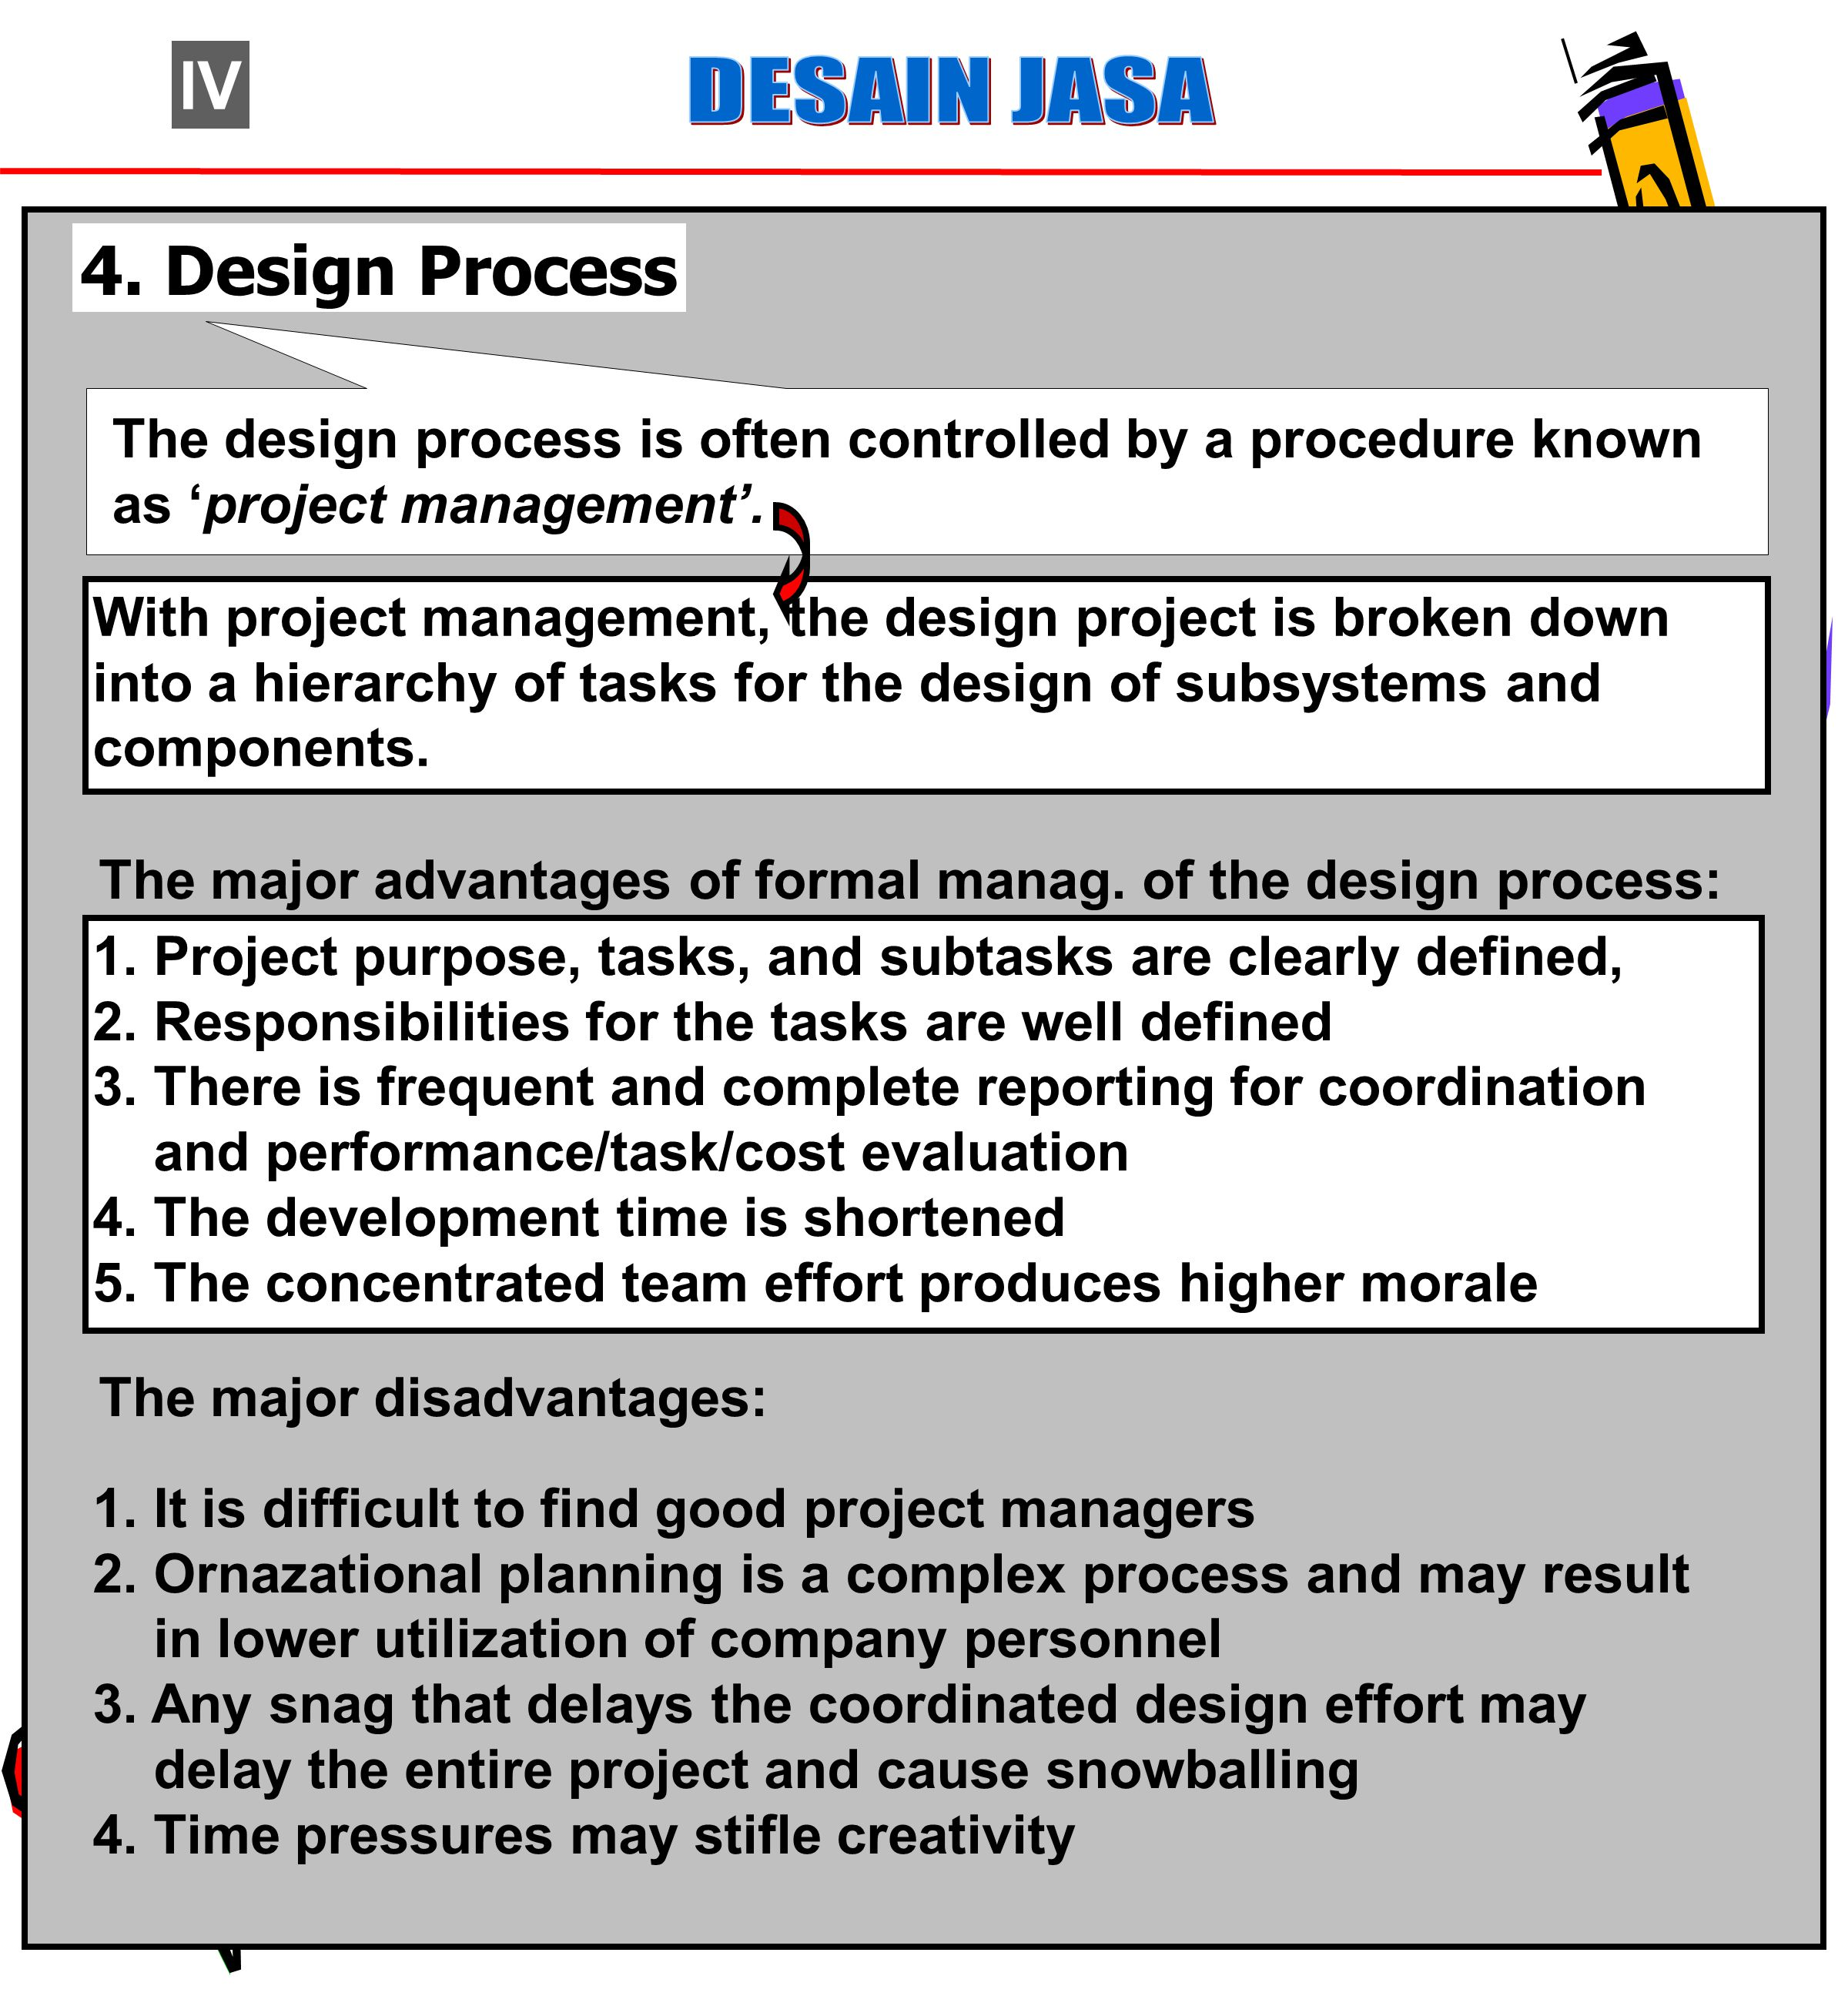 IV DESAIN JASA. 4. Design Process. The design process is often controlled by a procedure known as 'project management'.